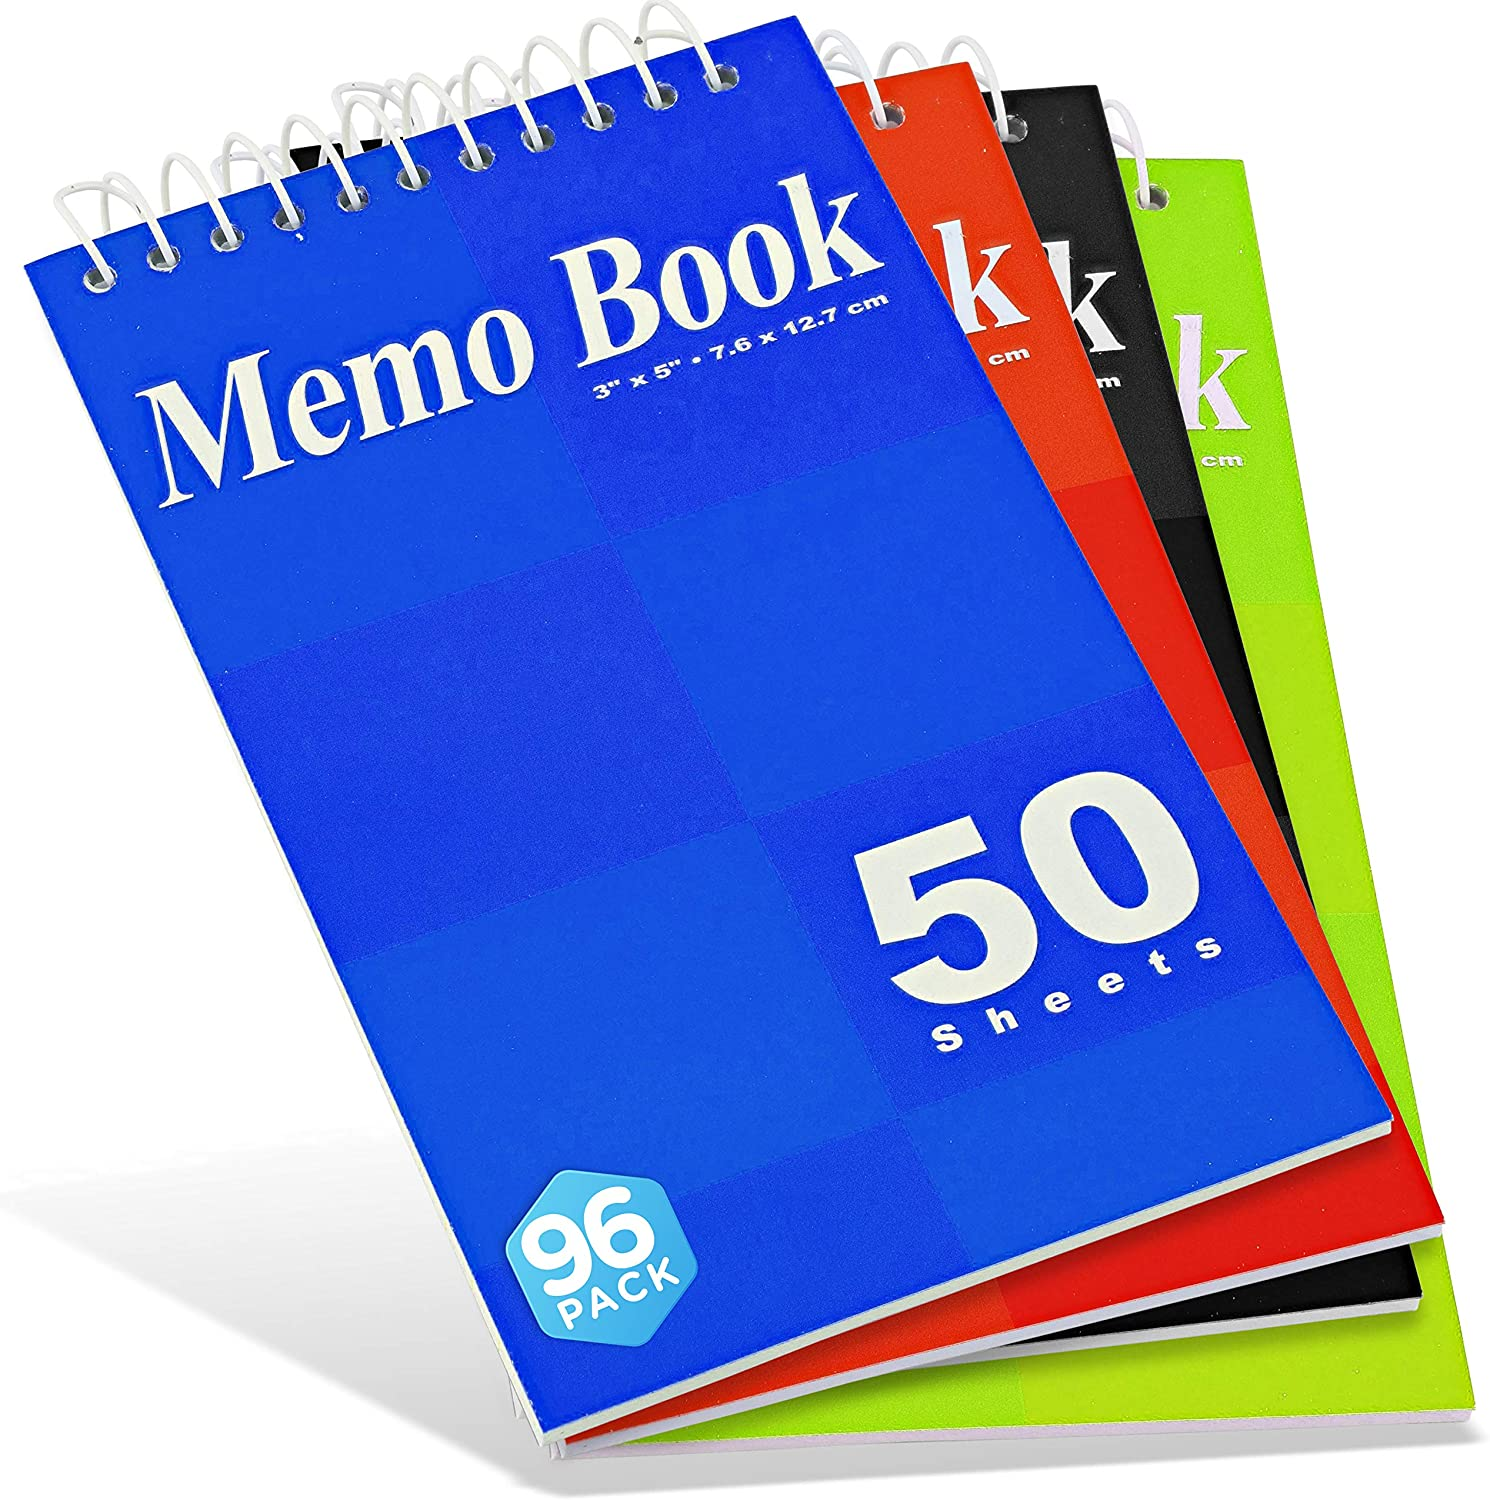 Emraw Top Bound Spiral Memo Pad, Assorted Color, Covers 5 x 3 Inches Spiral Notebook, Wire Binding Scratch Pads, for Outdoor Activities (Pack of 96)